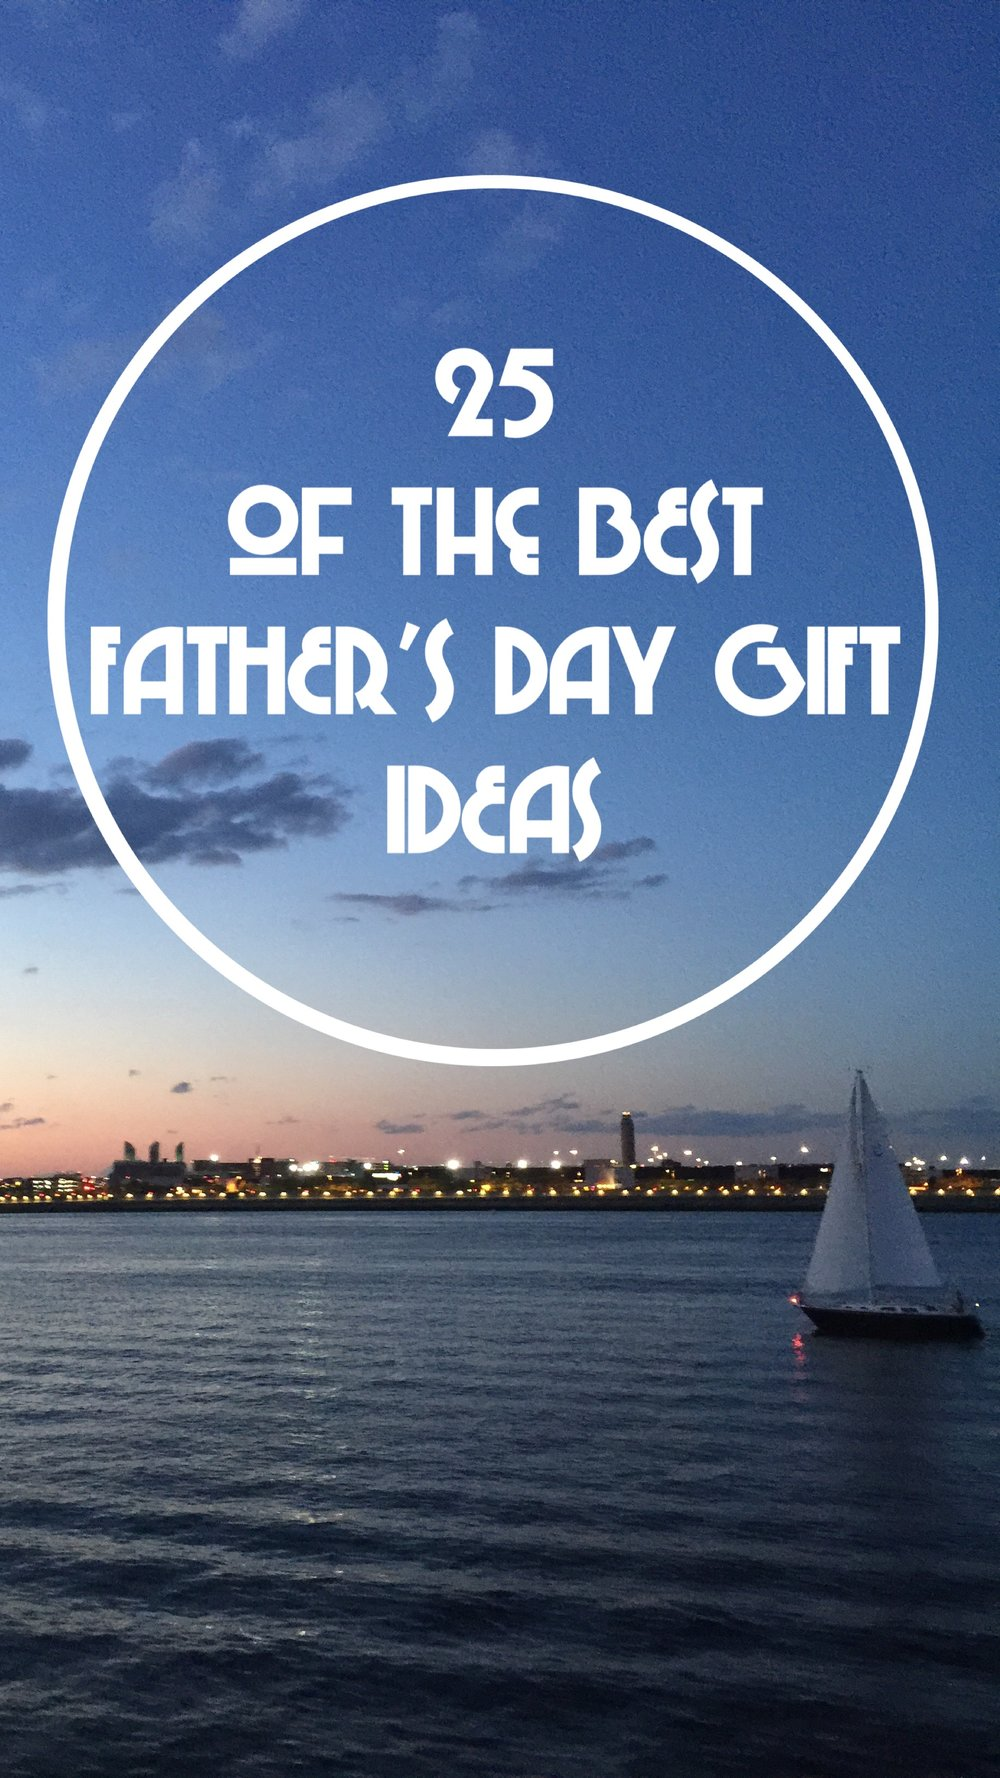 25 of the best Father's Day Gift Ideas 2017